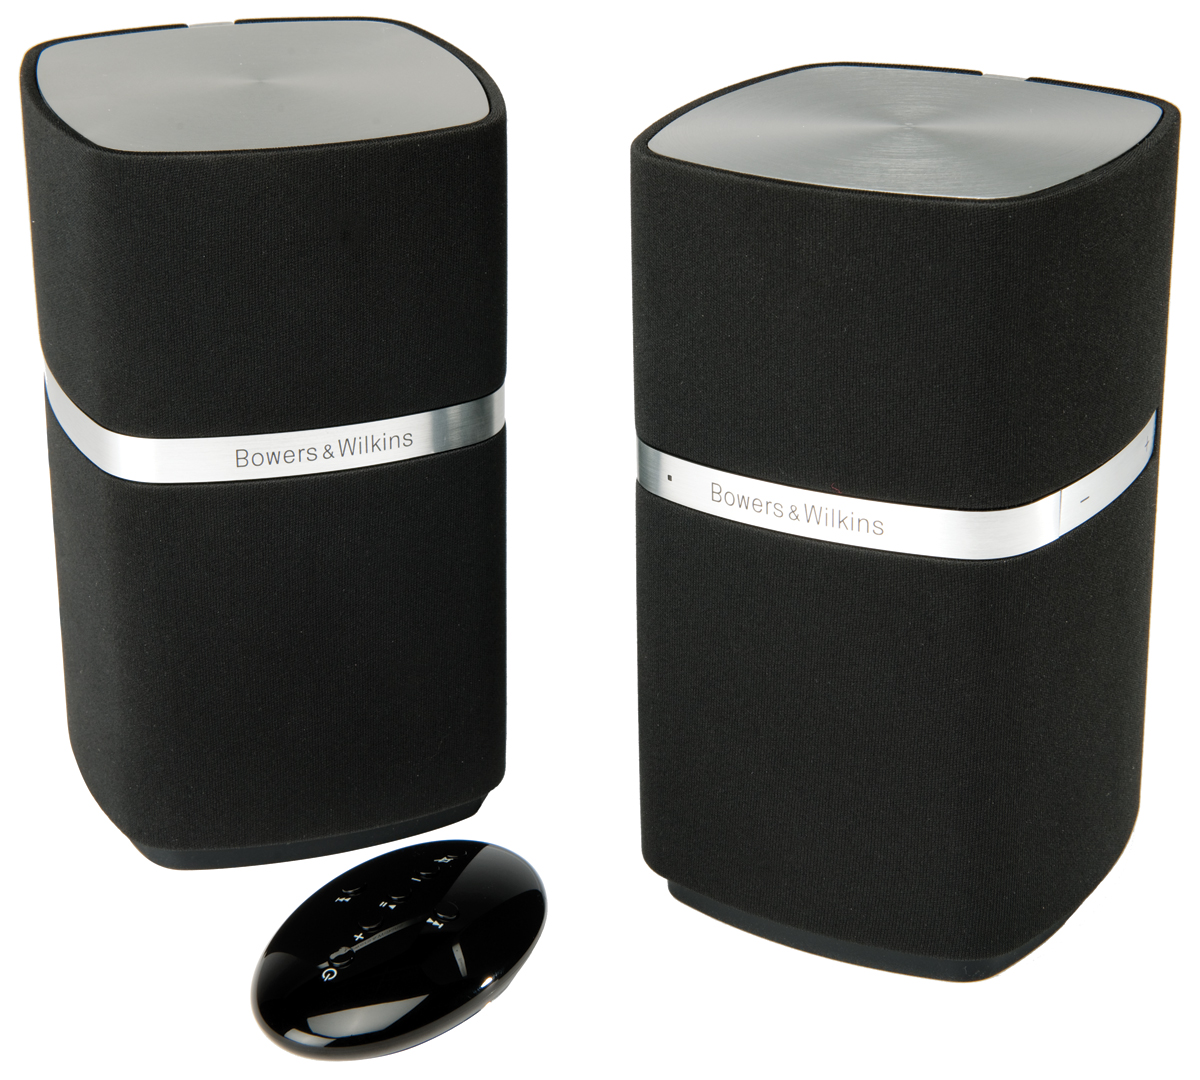 Bowers & Wilkins Speakers MM1